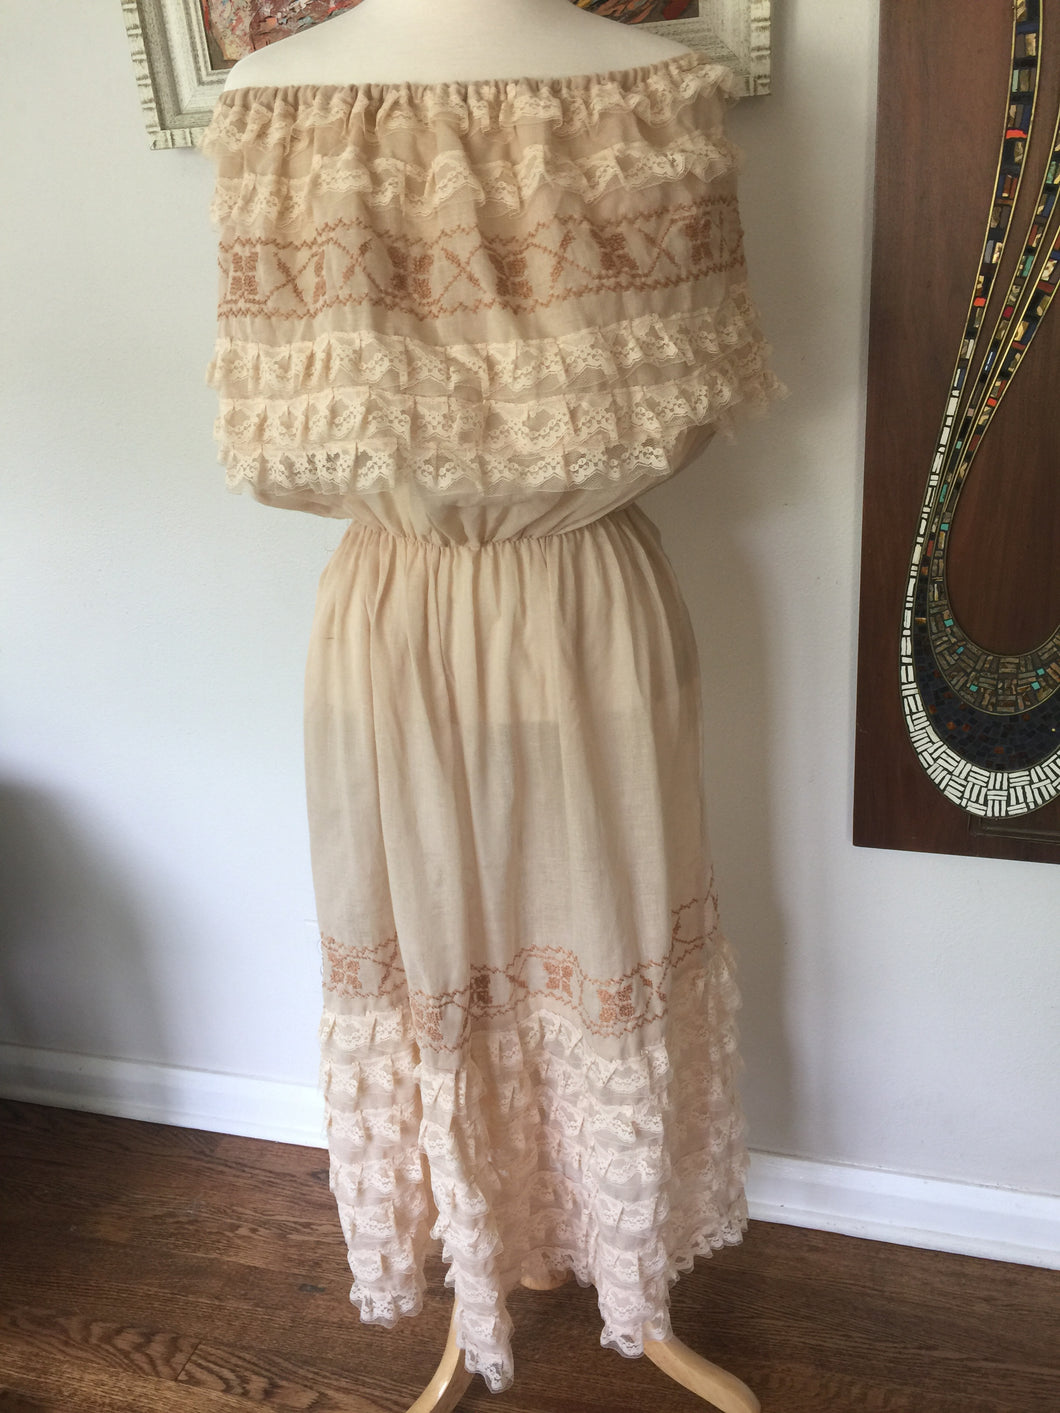 Vintage Bohemian Sheer Lace And Embroidery Off The Shoulder MexiCali Vibe Dress